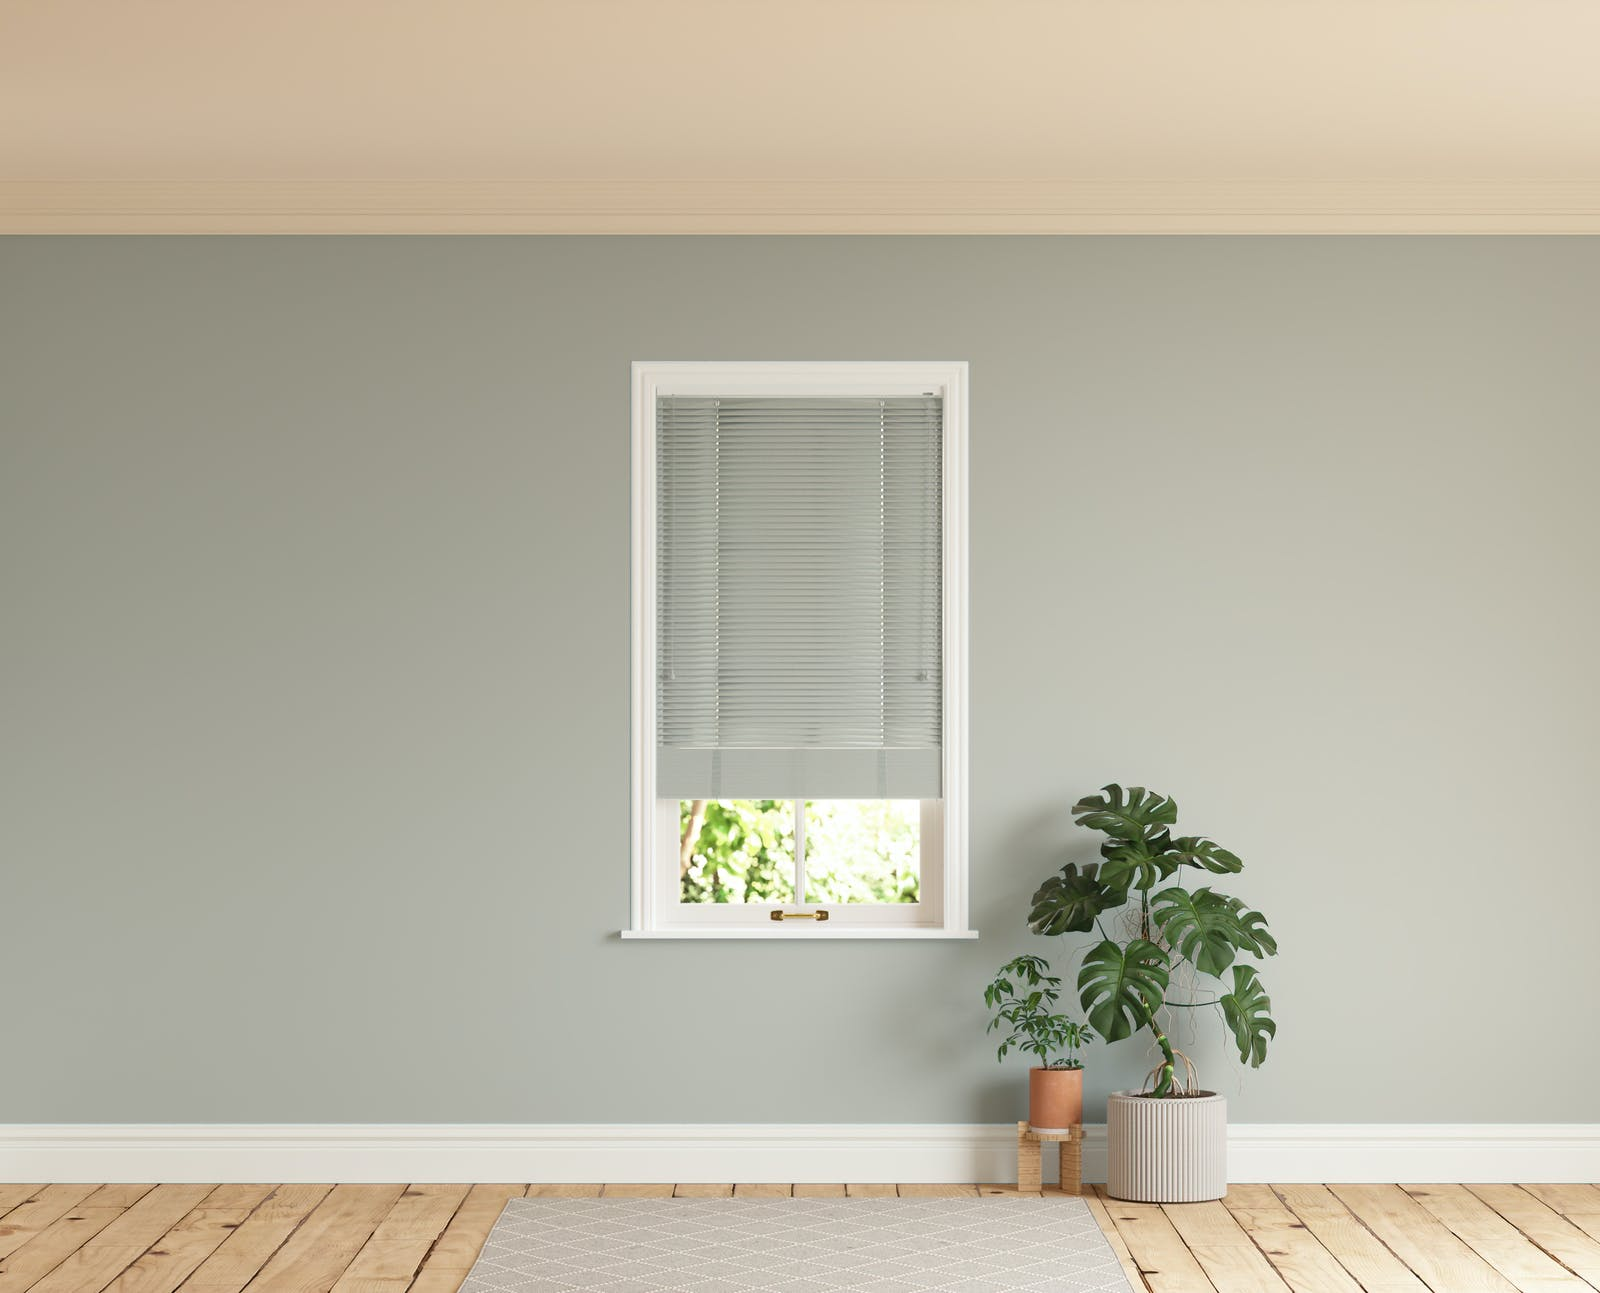 Room with walls painted in Lick Grey 04 and Grey 04 Venetian blinds